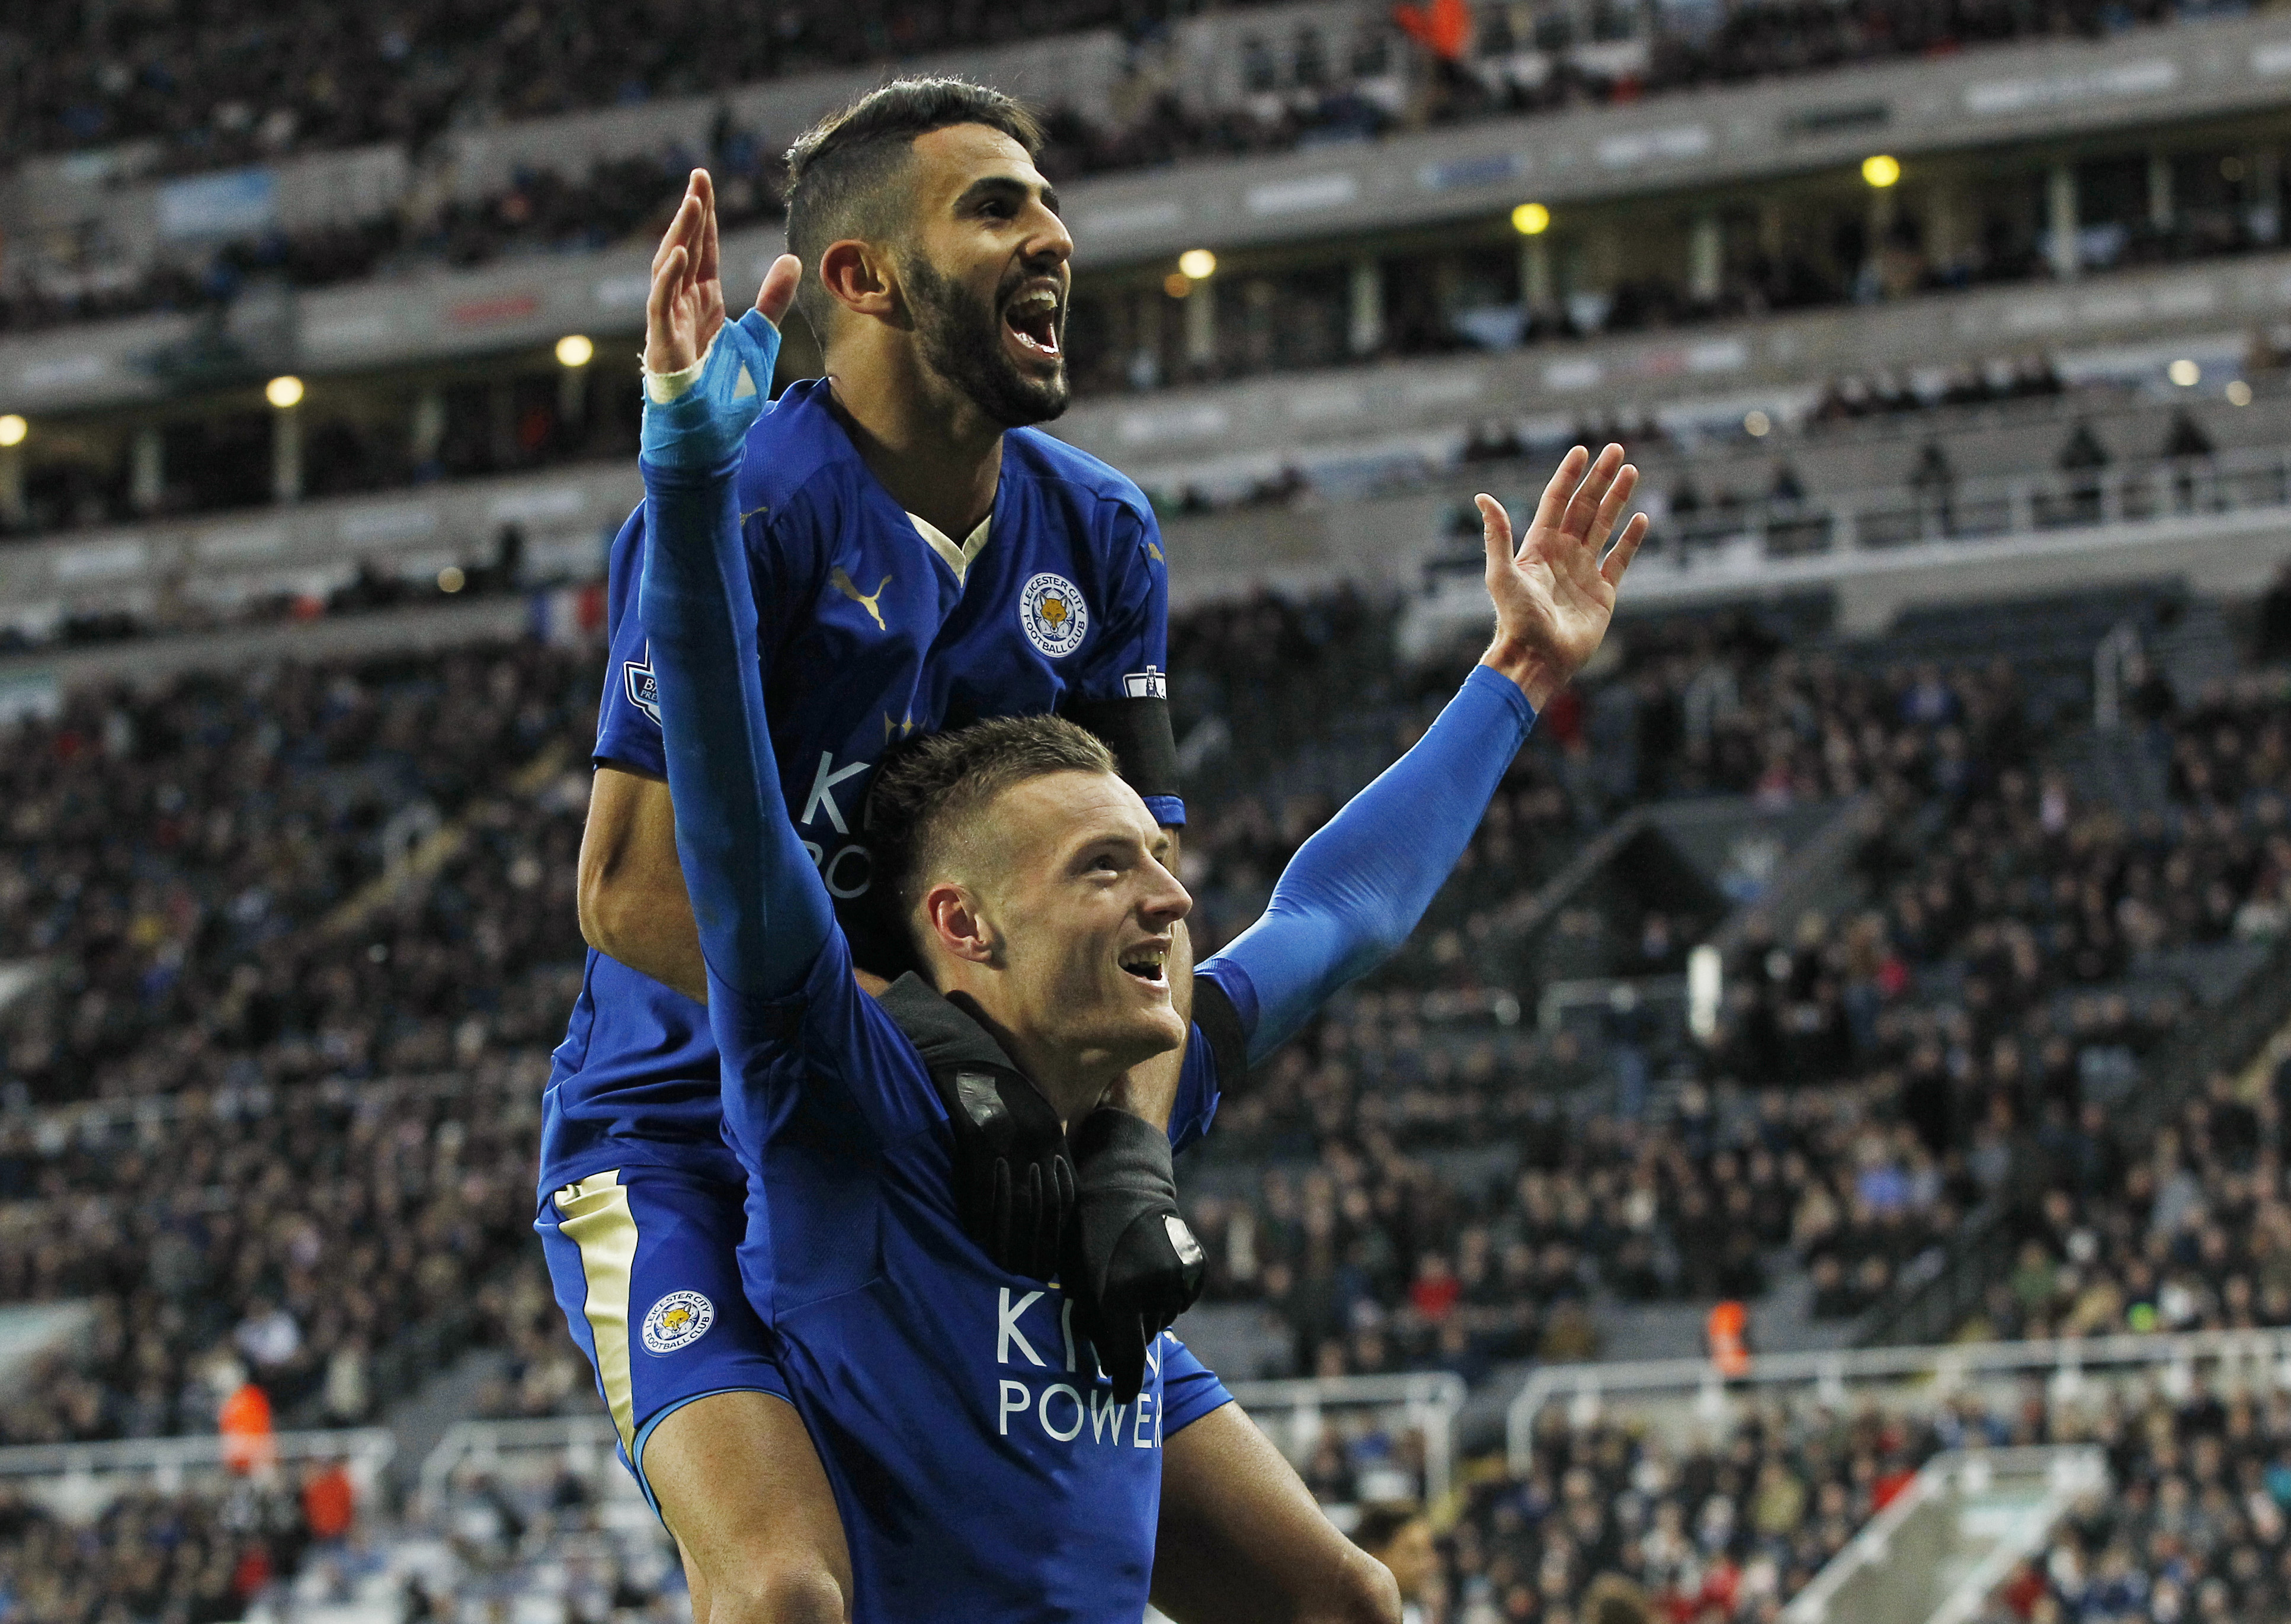 Jamie Vardy celebrates with Riyad Mahrez after scoring the first goal for Leicester City to equal the record for scoring in consecutive Premier League games. Photo: Reuters